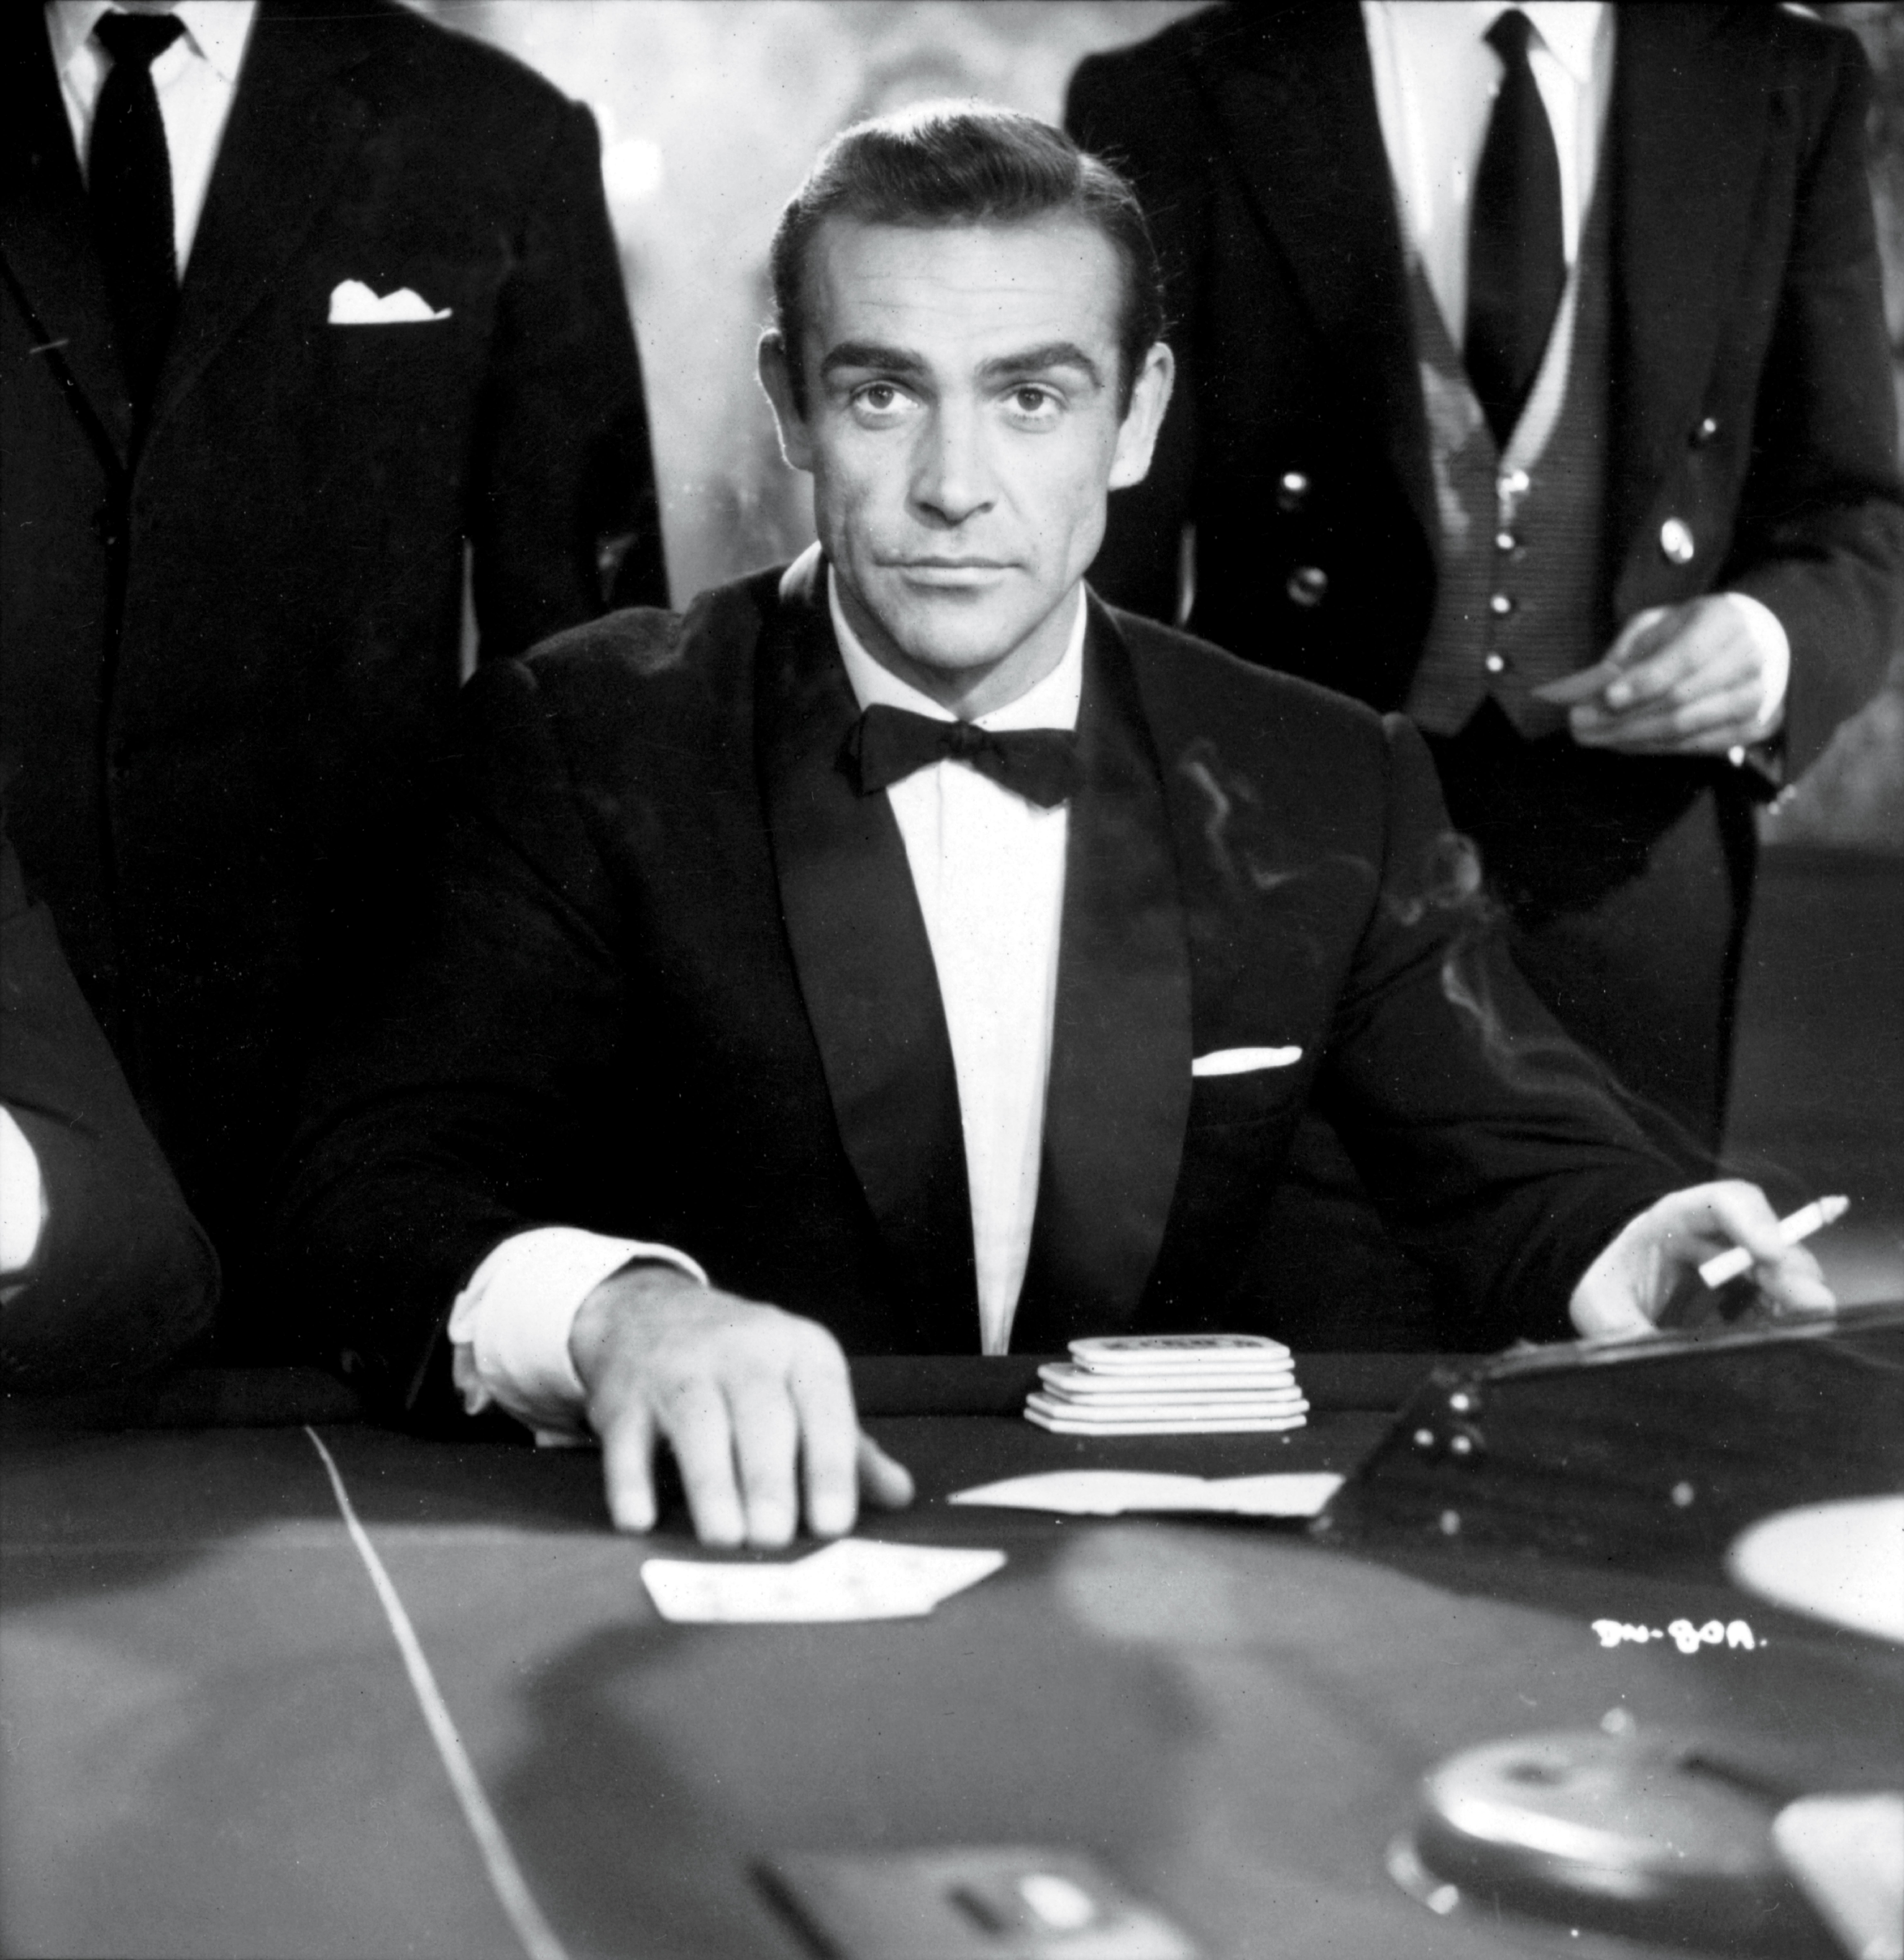 """Sean Connery in the first film in the James Bond series """"Dr. No"""" from 1962."""